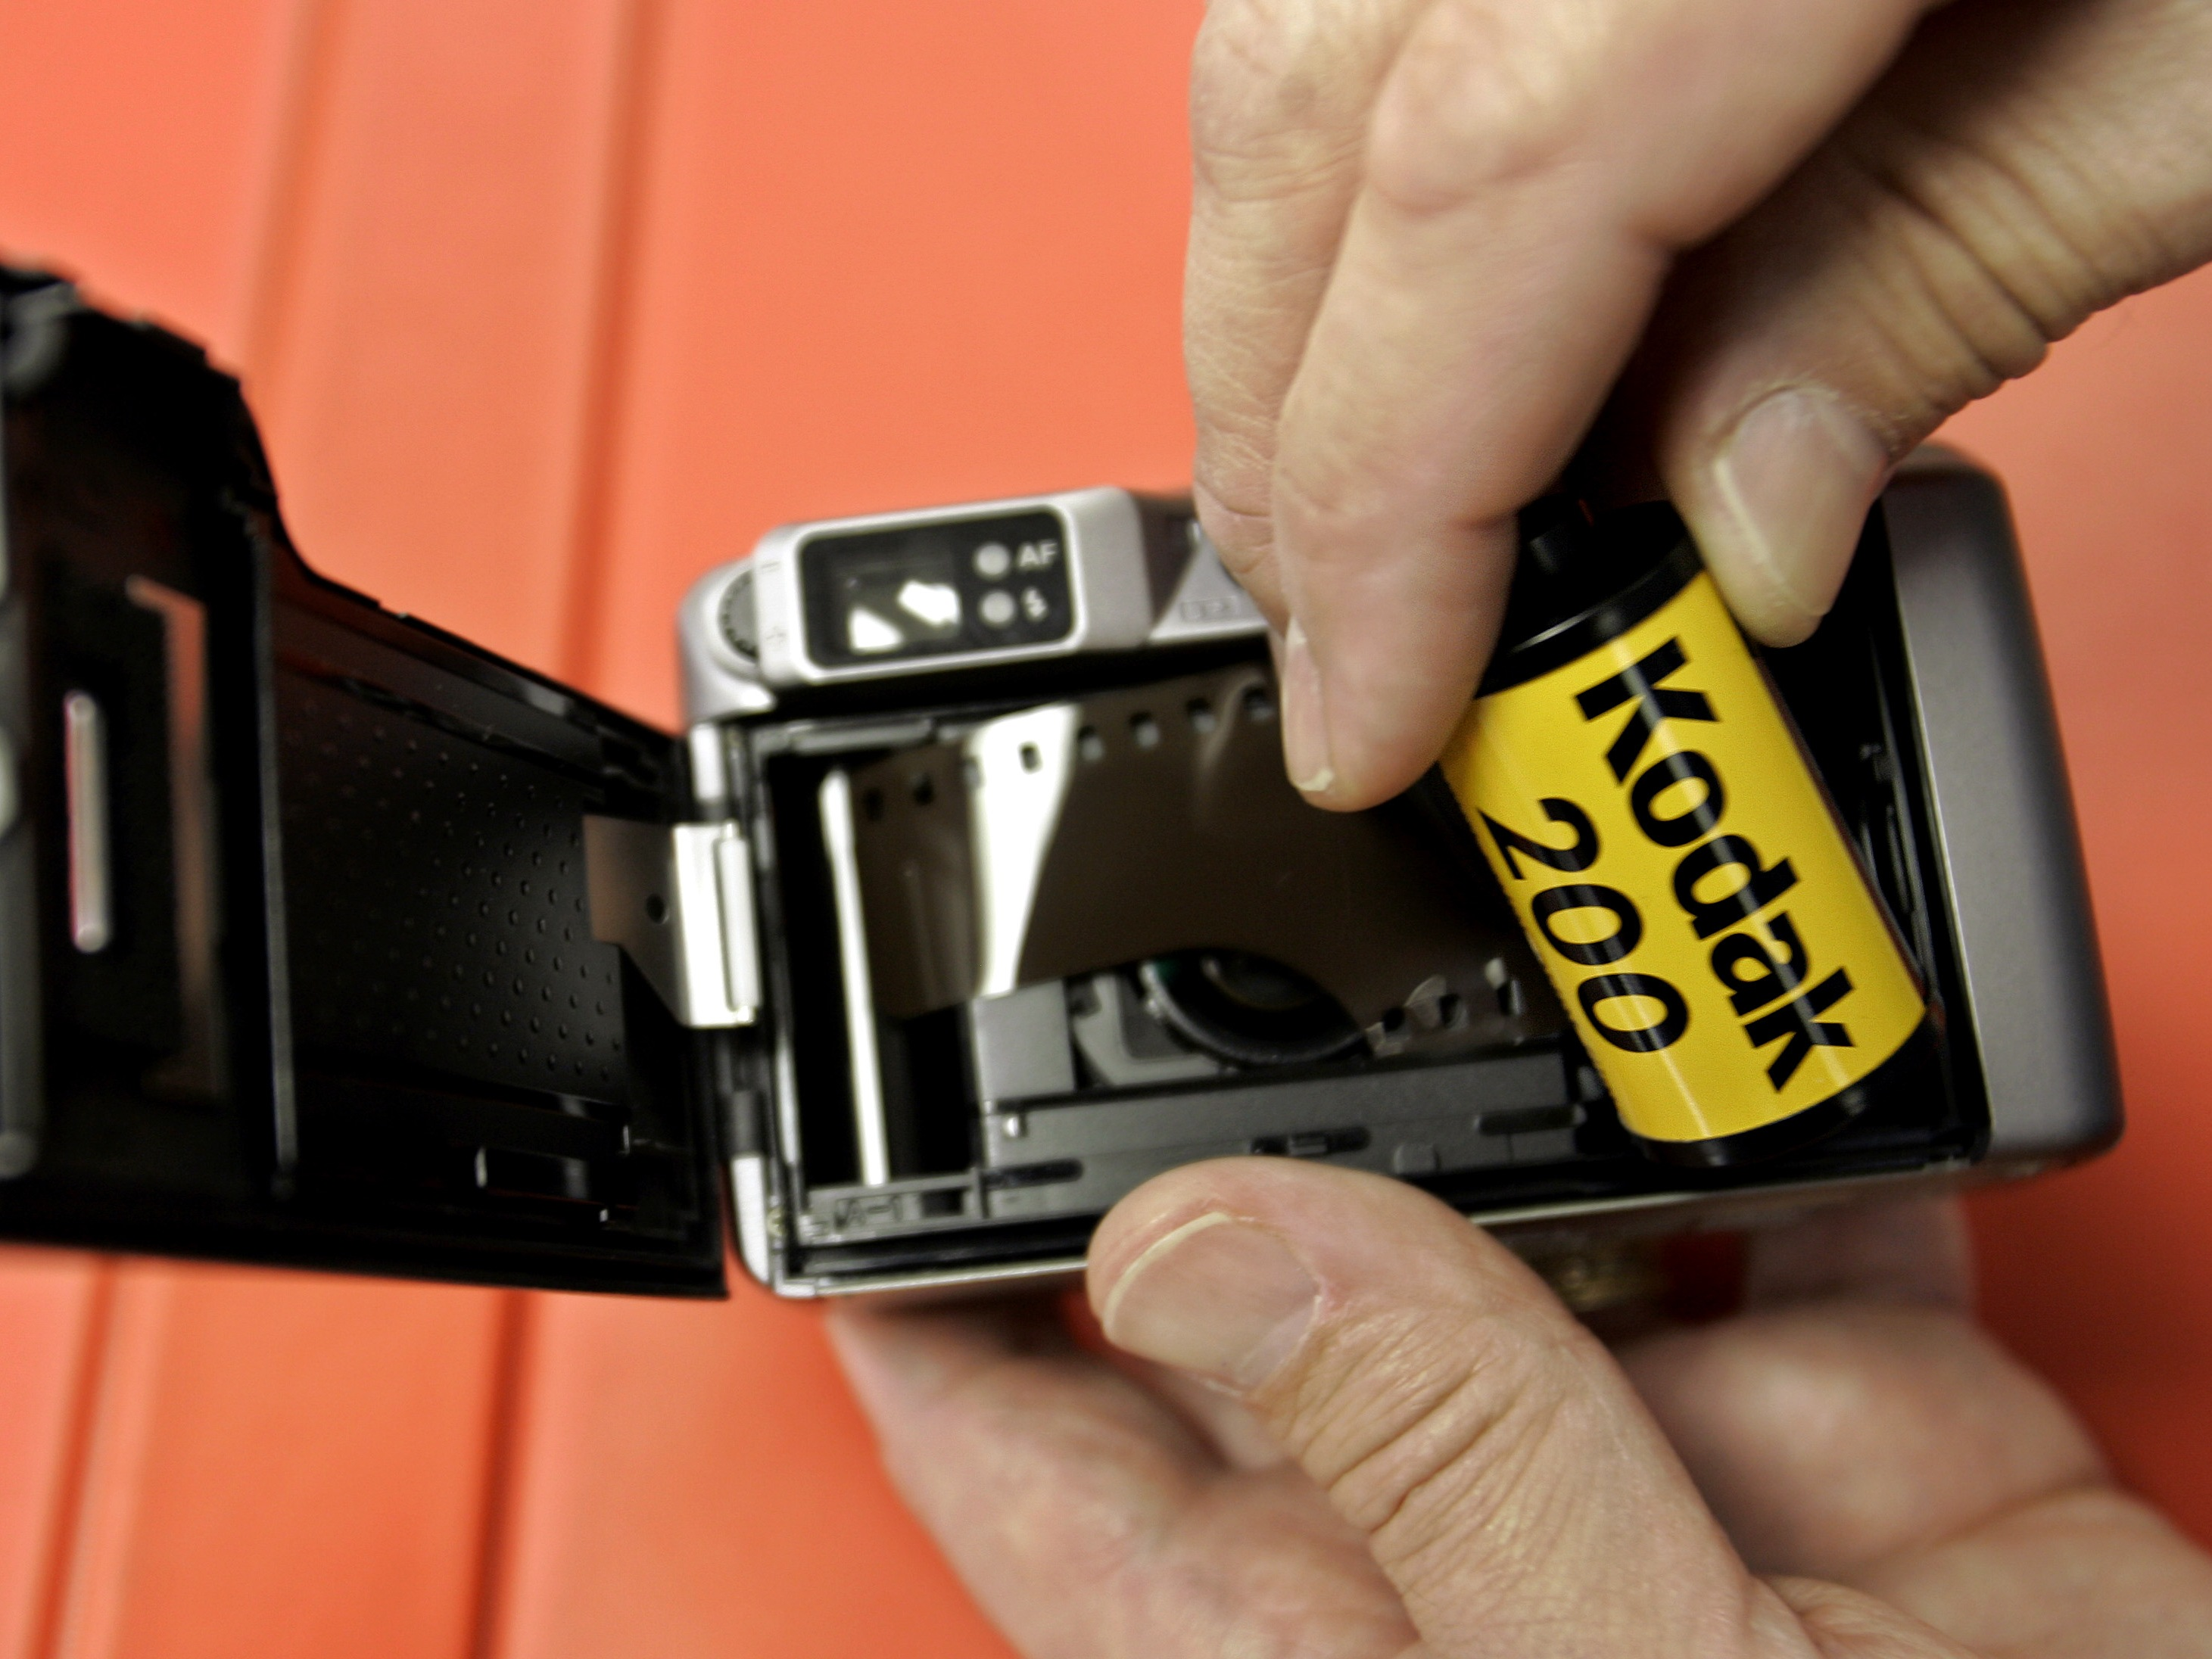 ** FILE ** Keeble and Shuchat Photography salesman Jeff Alford puts a roll of 200 ASA Kodak Gold 200 film into a Pentax IQ Zoom 130m camera at his store in Palo Alto, Calif. in this Aug. 1, 2006 file photo.  Eastman Kodak Co., rounding the final bend in a four-year digital overhaul, swung to a $37 million profit in the third quarter Thursday, Nov. 1, 2007, as digital revenue almost tripled and wider profit margins overshadowed a slight drop in overall sales. (AP Photo/Paul Sakuma, file)